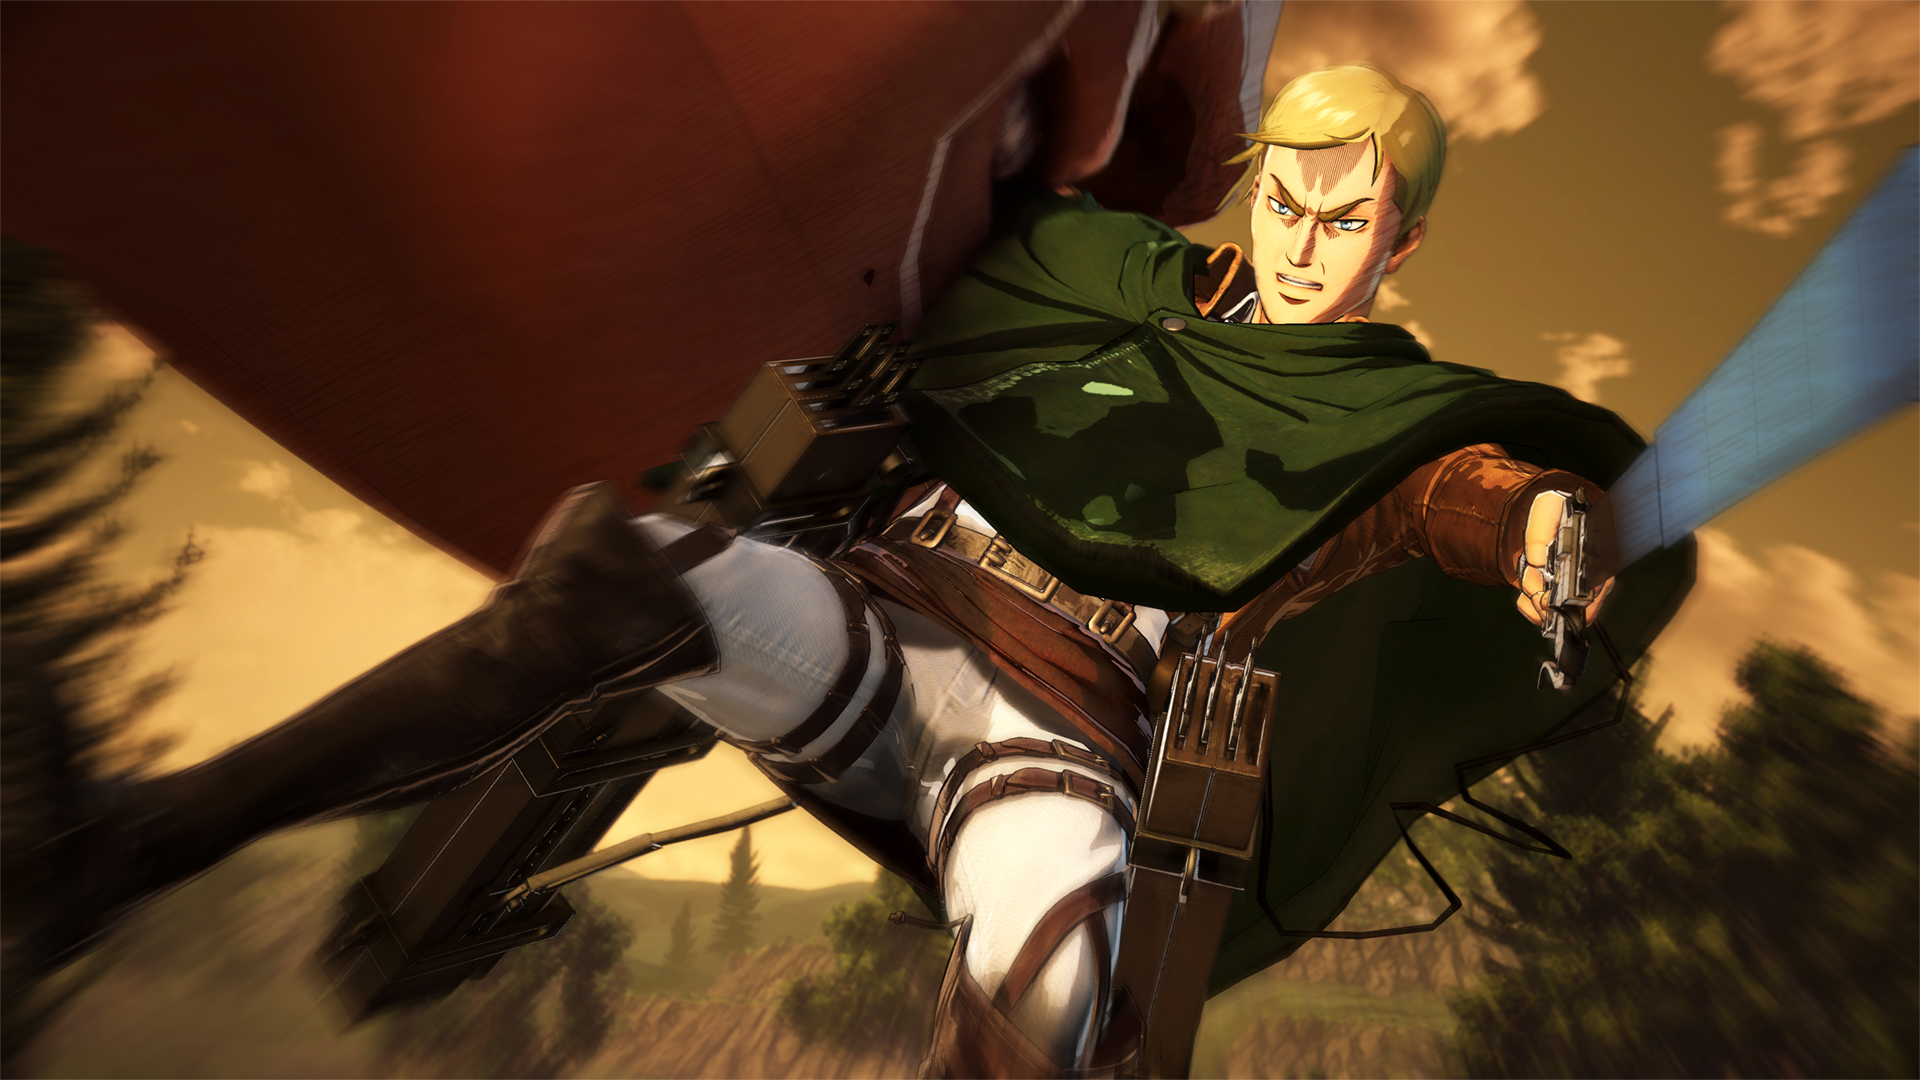 Erwin dating